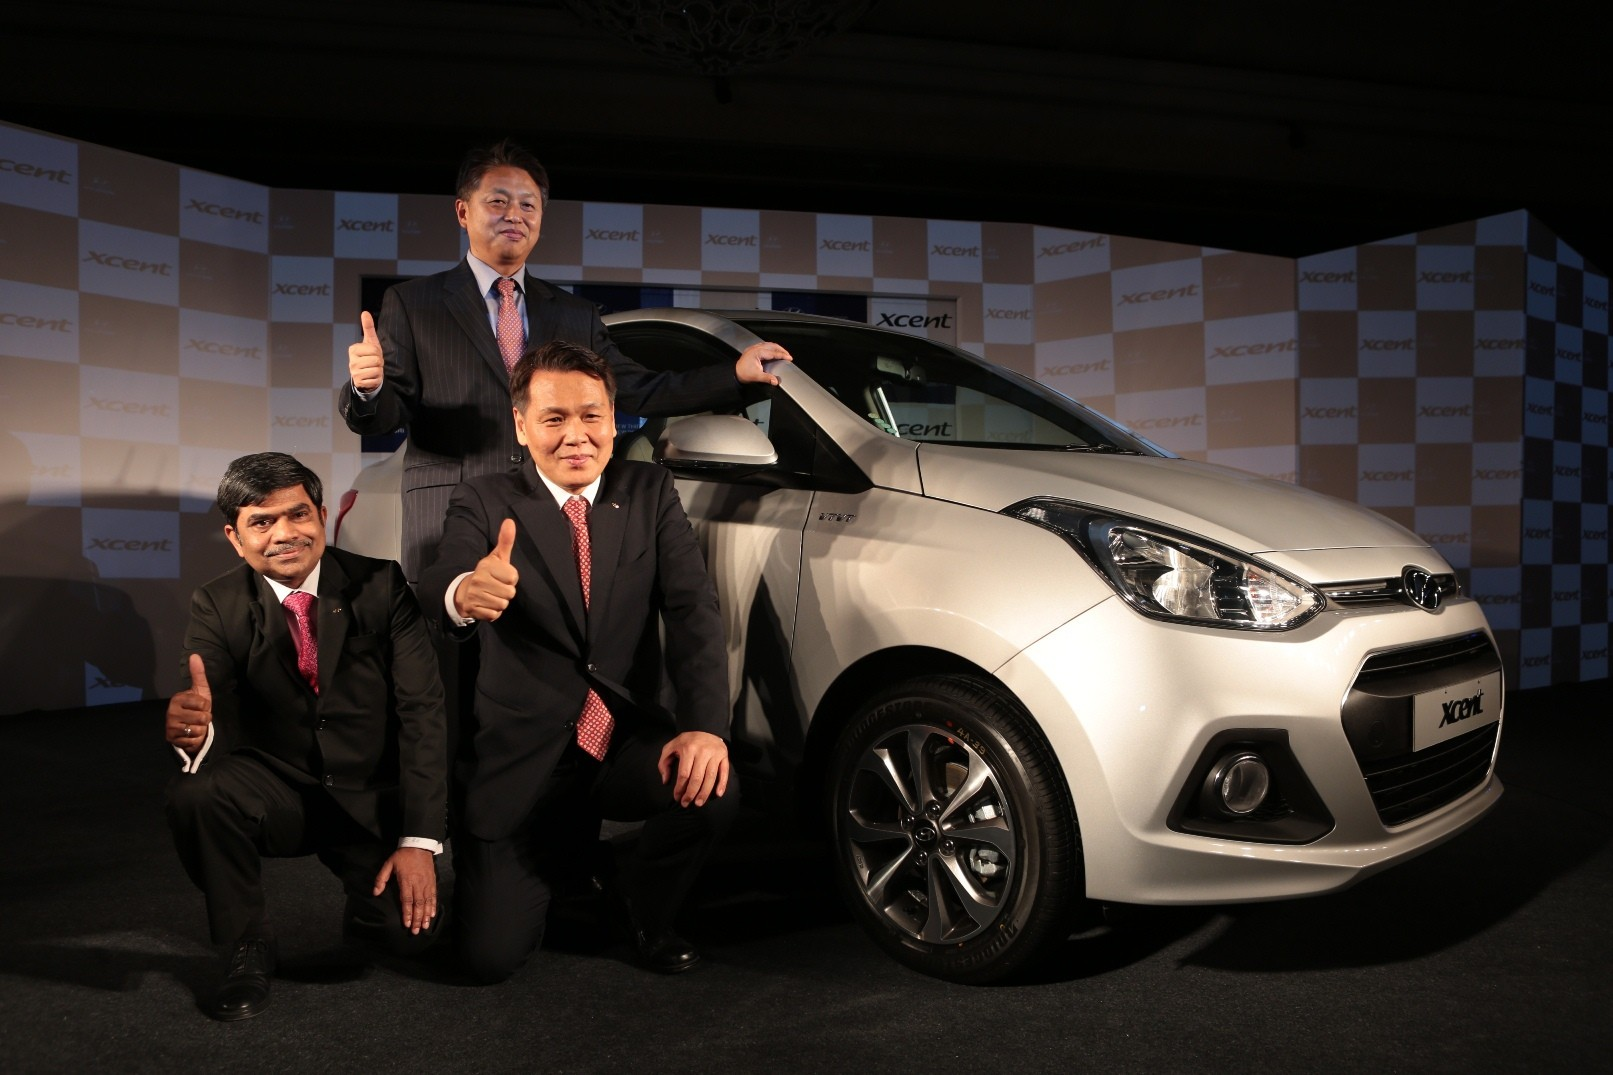 Hyundai Xcent compact sedan launched